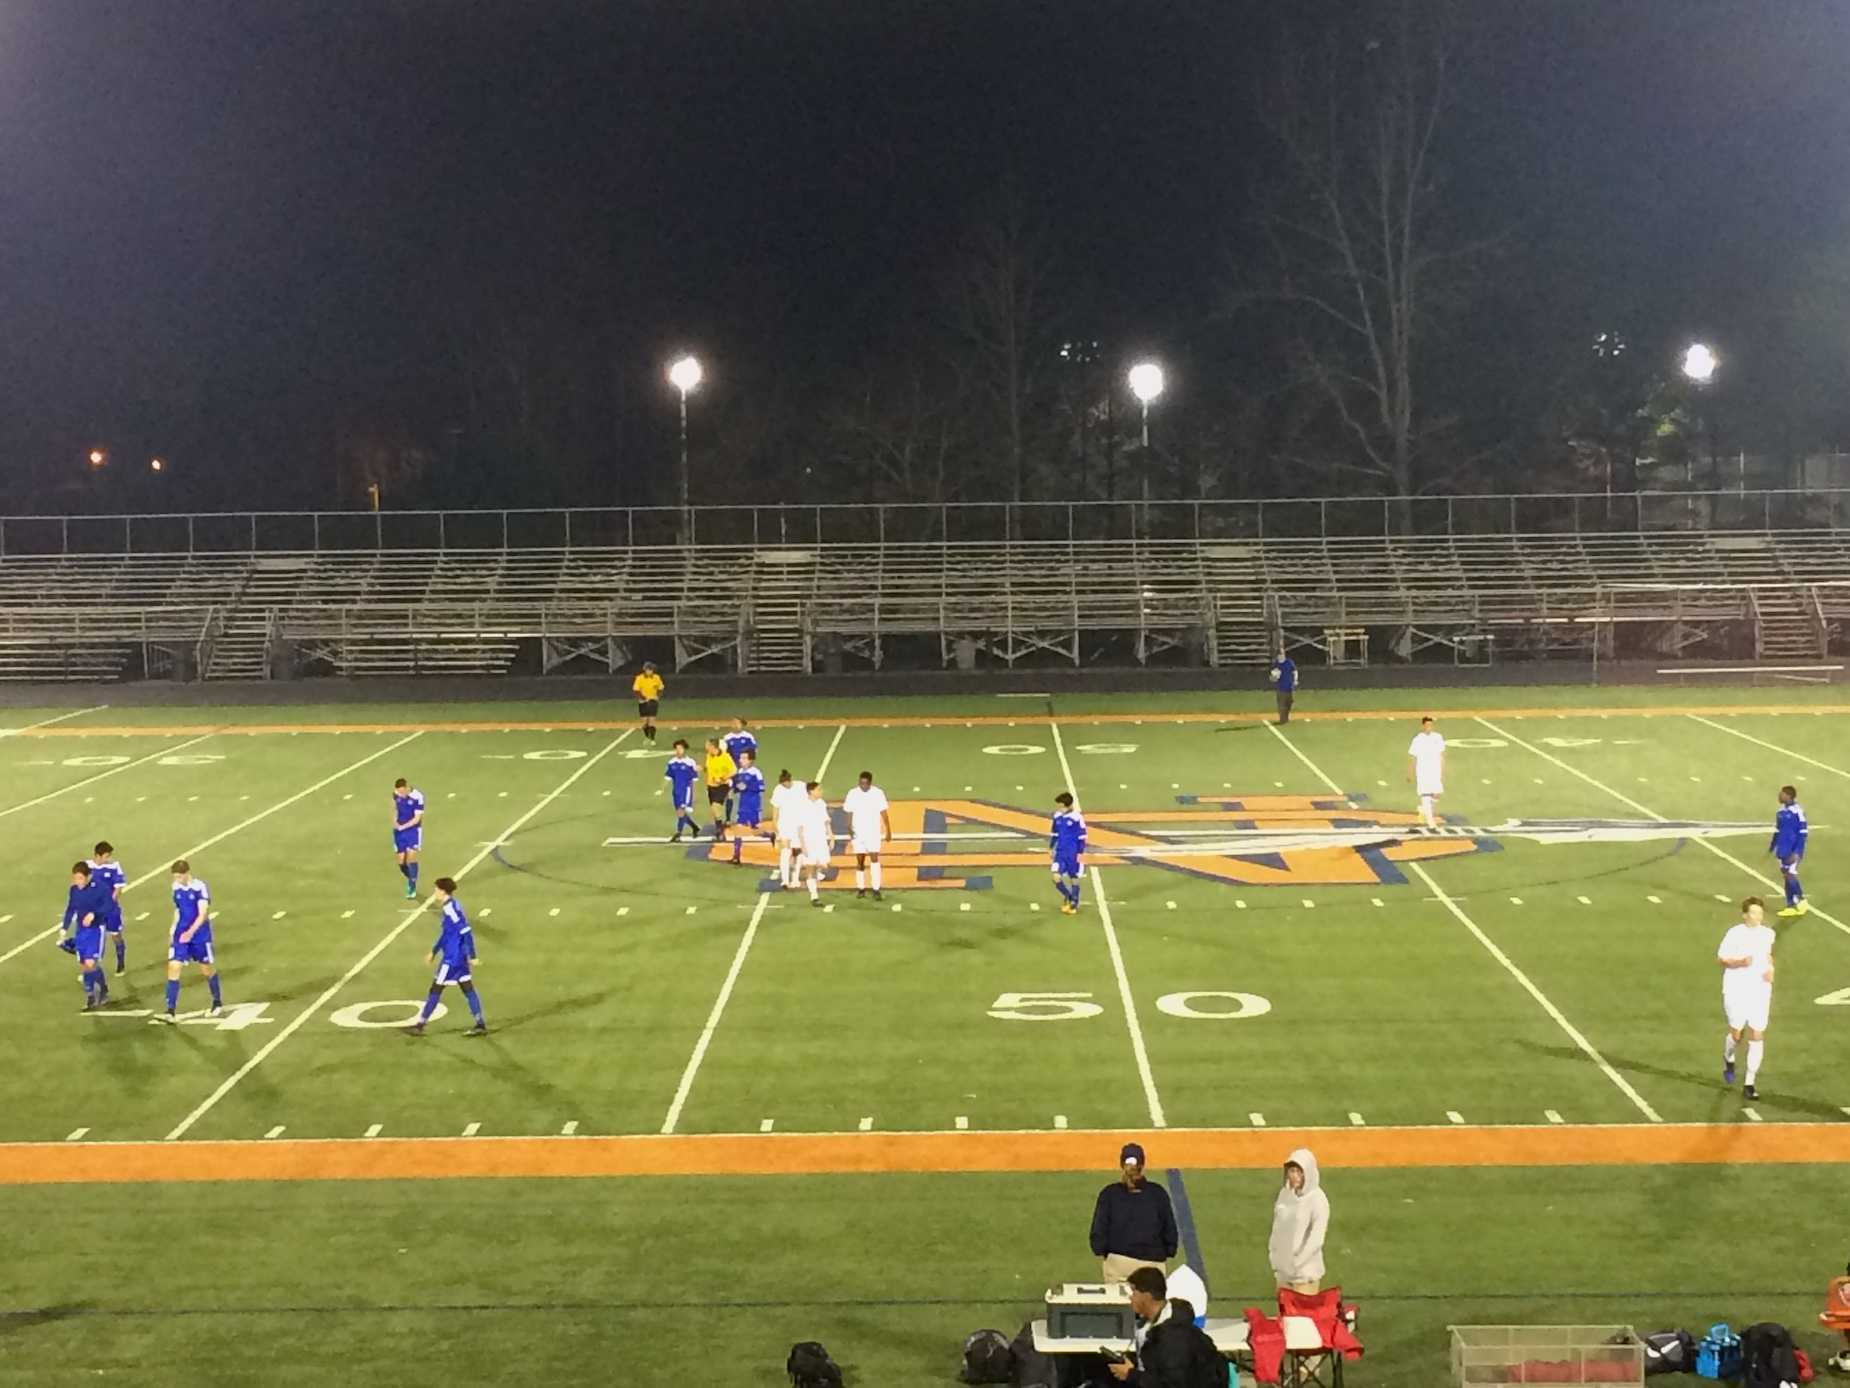 NC's men's varsity soccer team challenged the McEachern Indians on Tuesday, February 28, 2017.